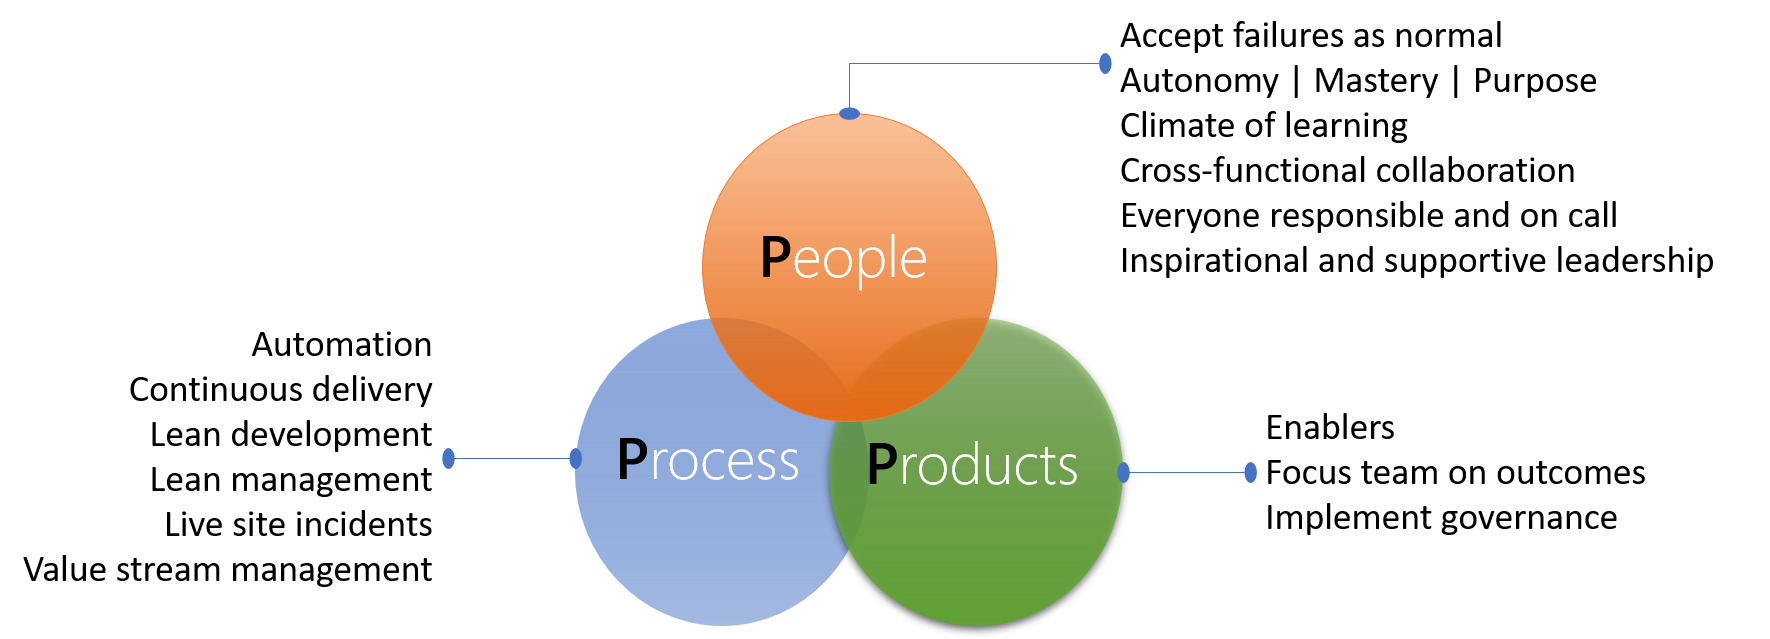 Breaking down walls between people, process, and products